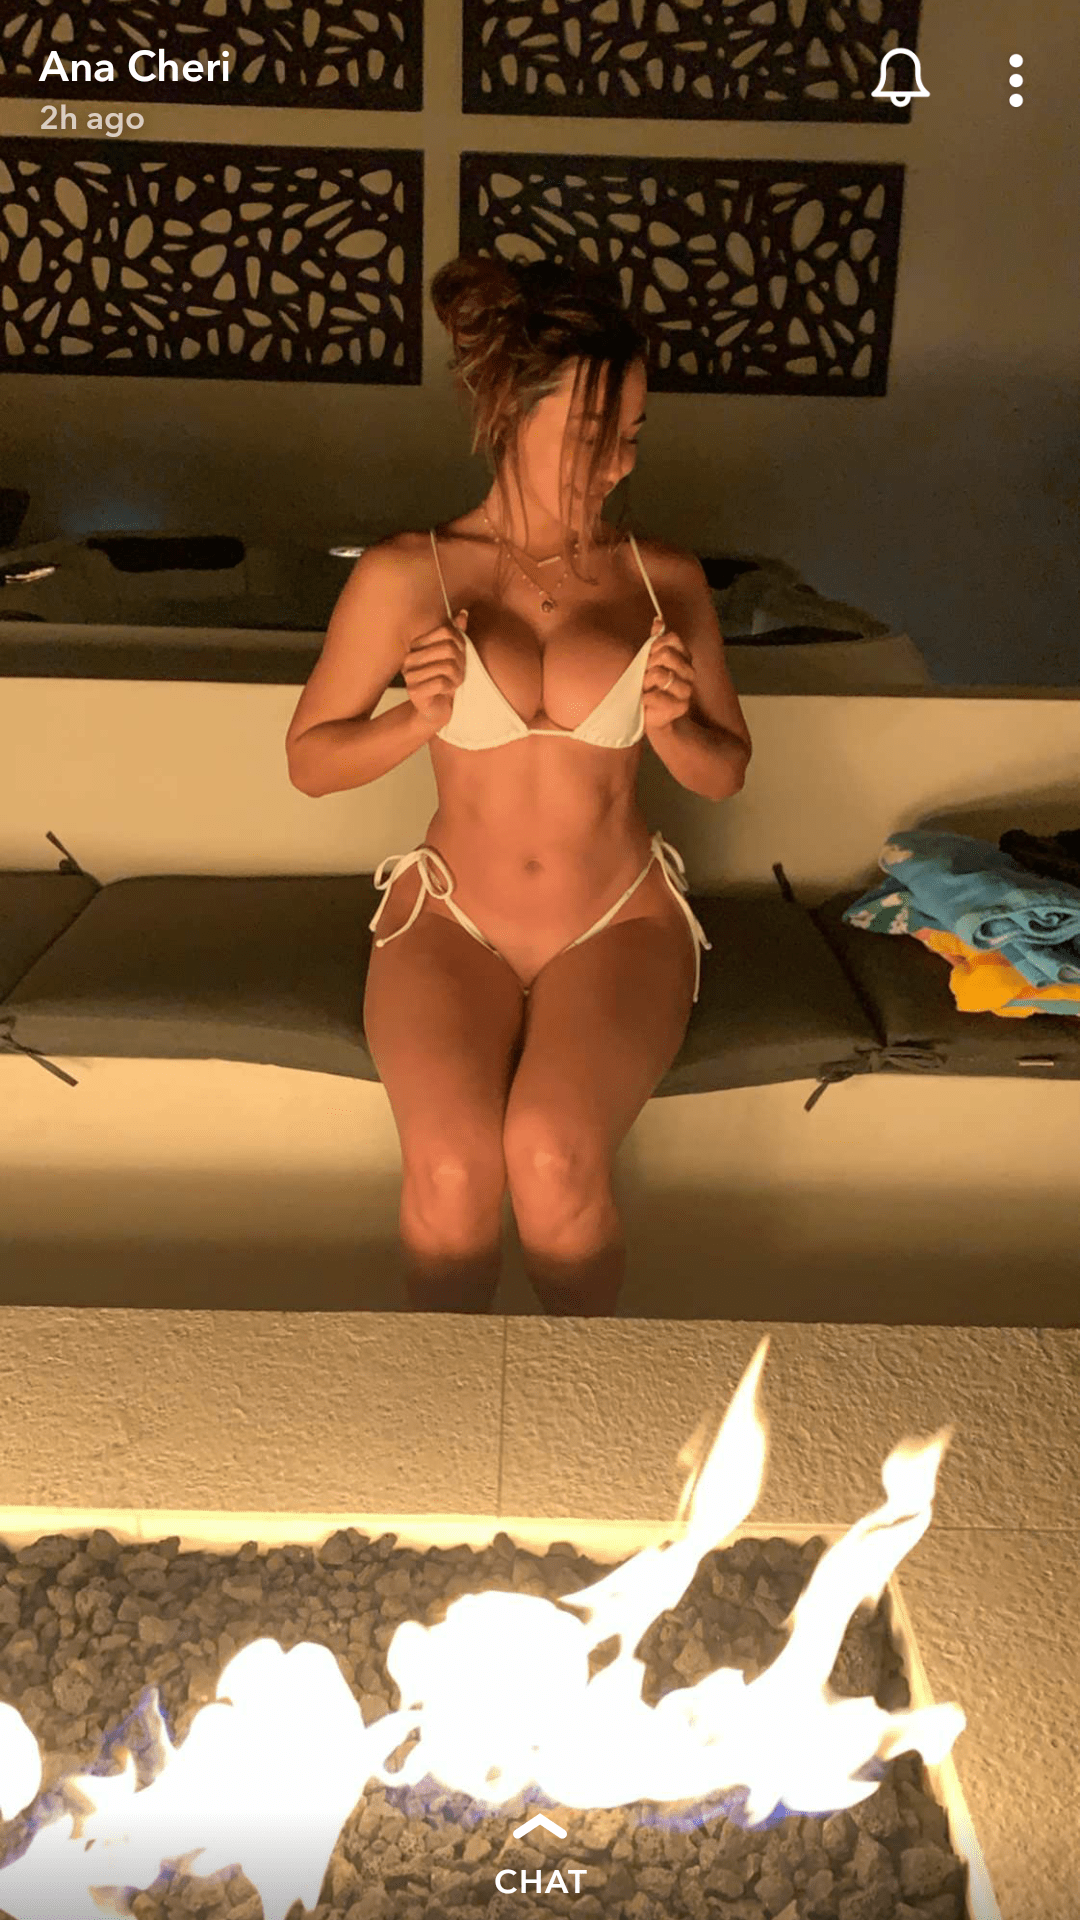 Ana Cheri Nude Onlyfans Leaked 0017